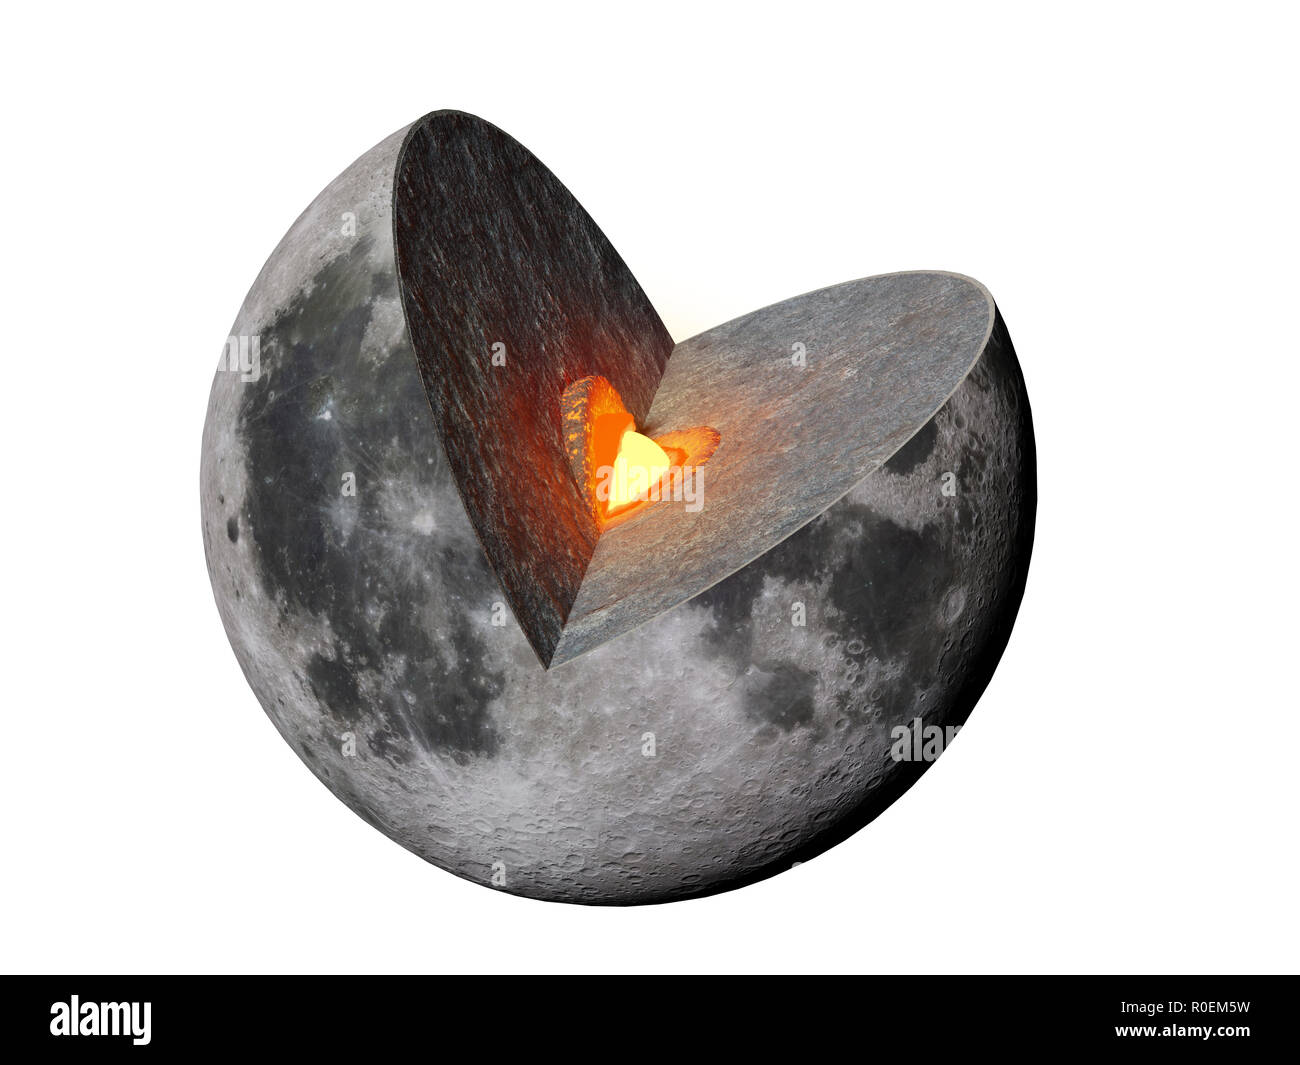 Moon structure, crust, mantle, core,  isolated on white background - Stock Image